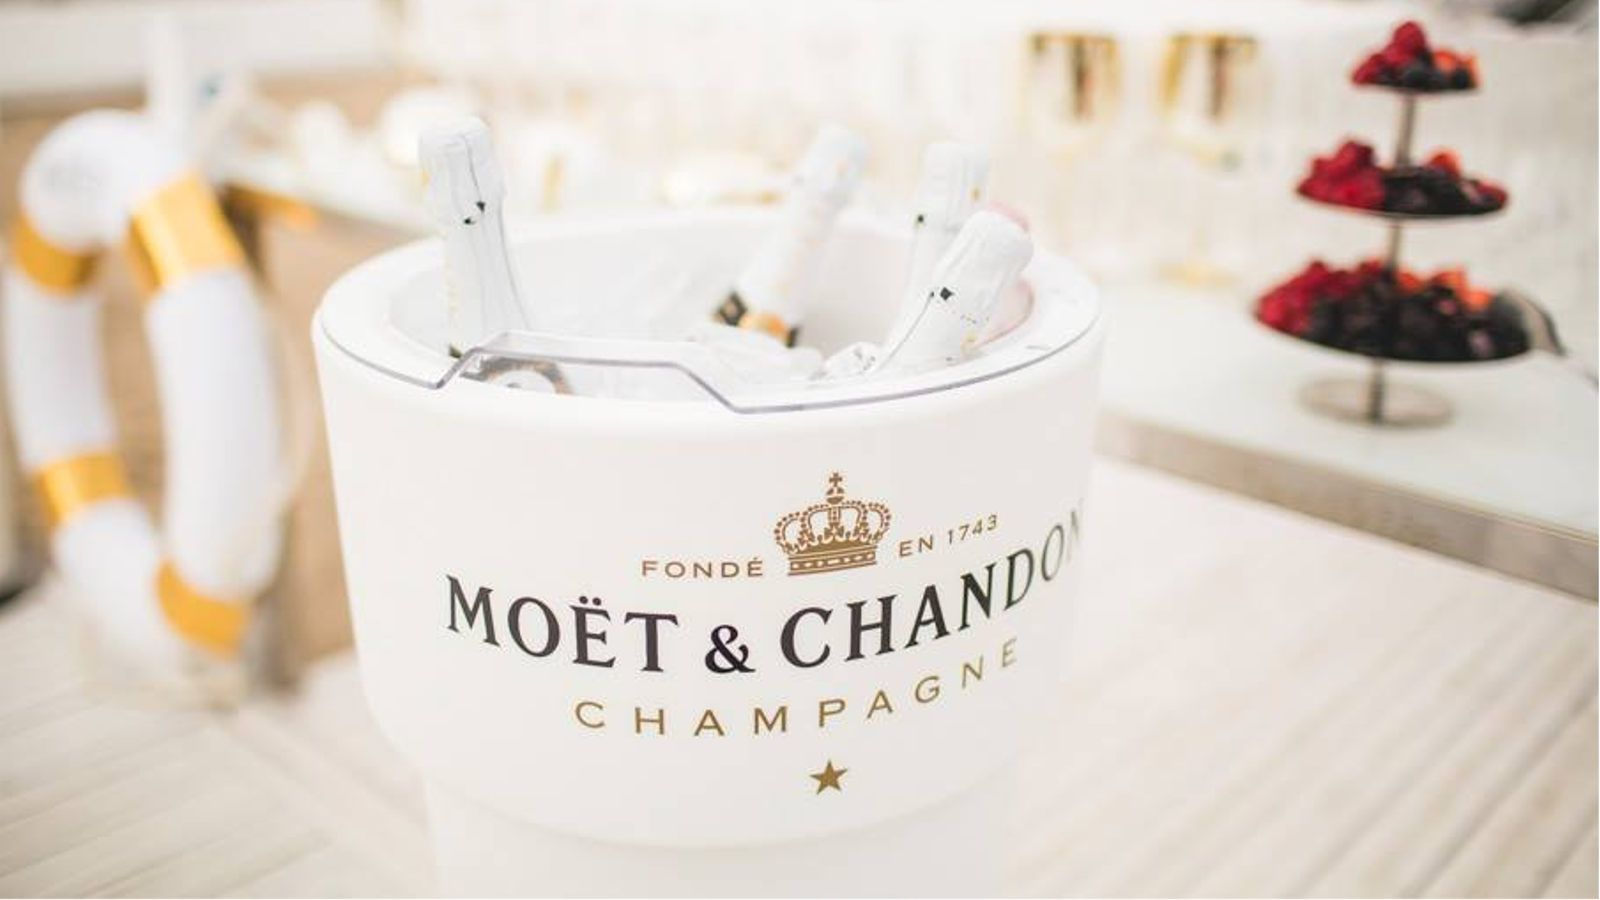 Parties with Moet Chandon at Le Méridien Ra